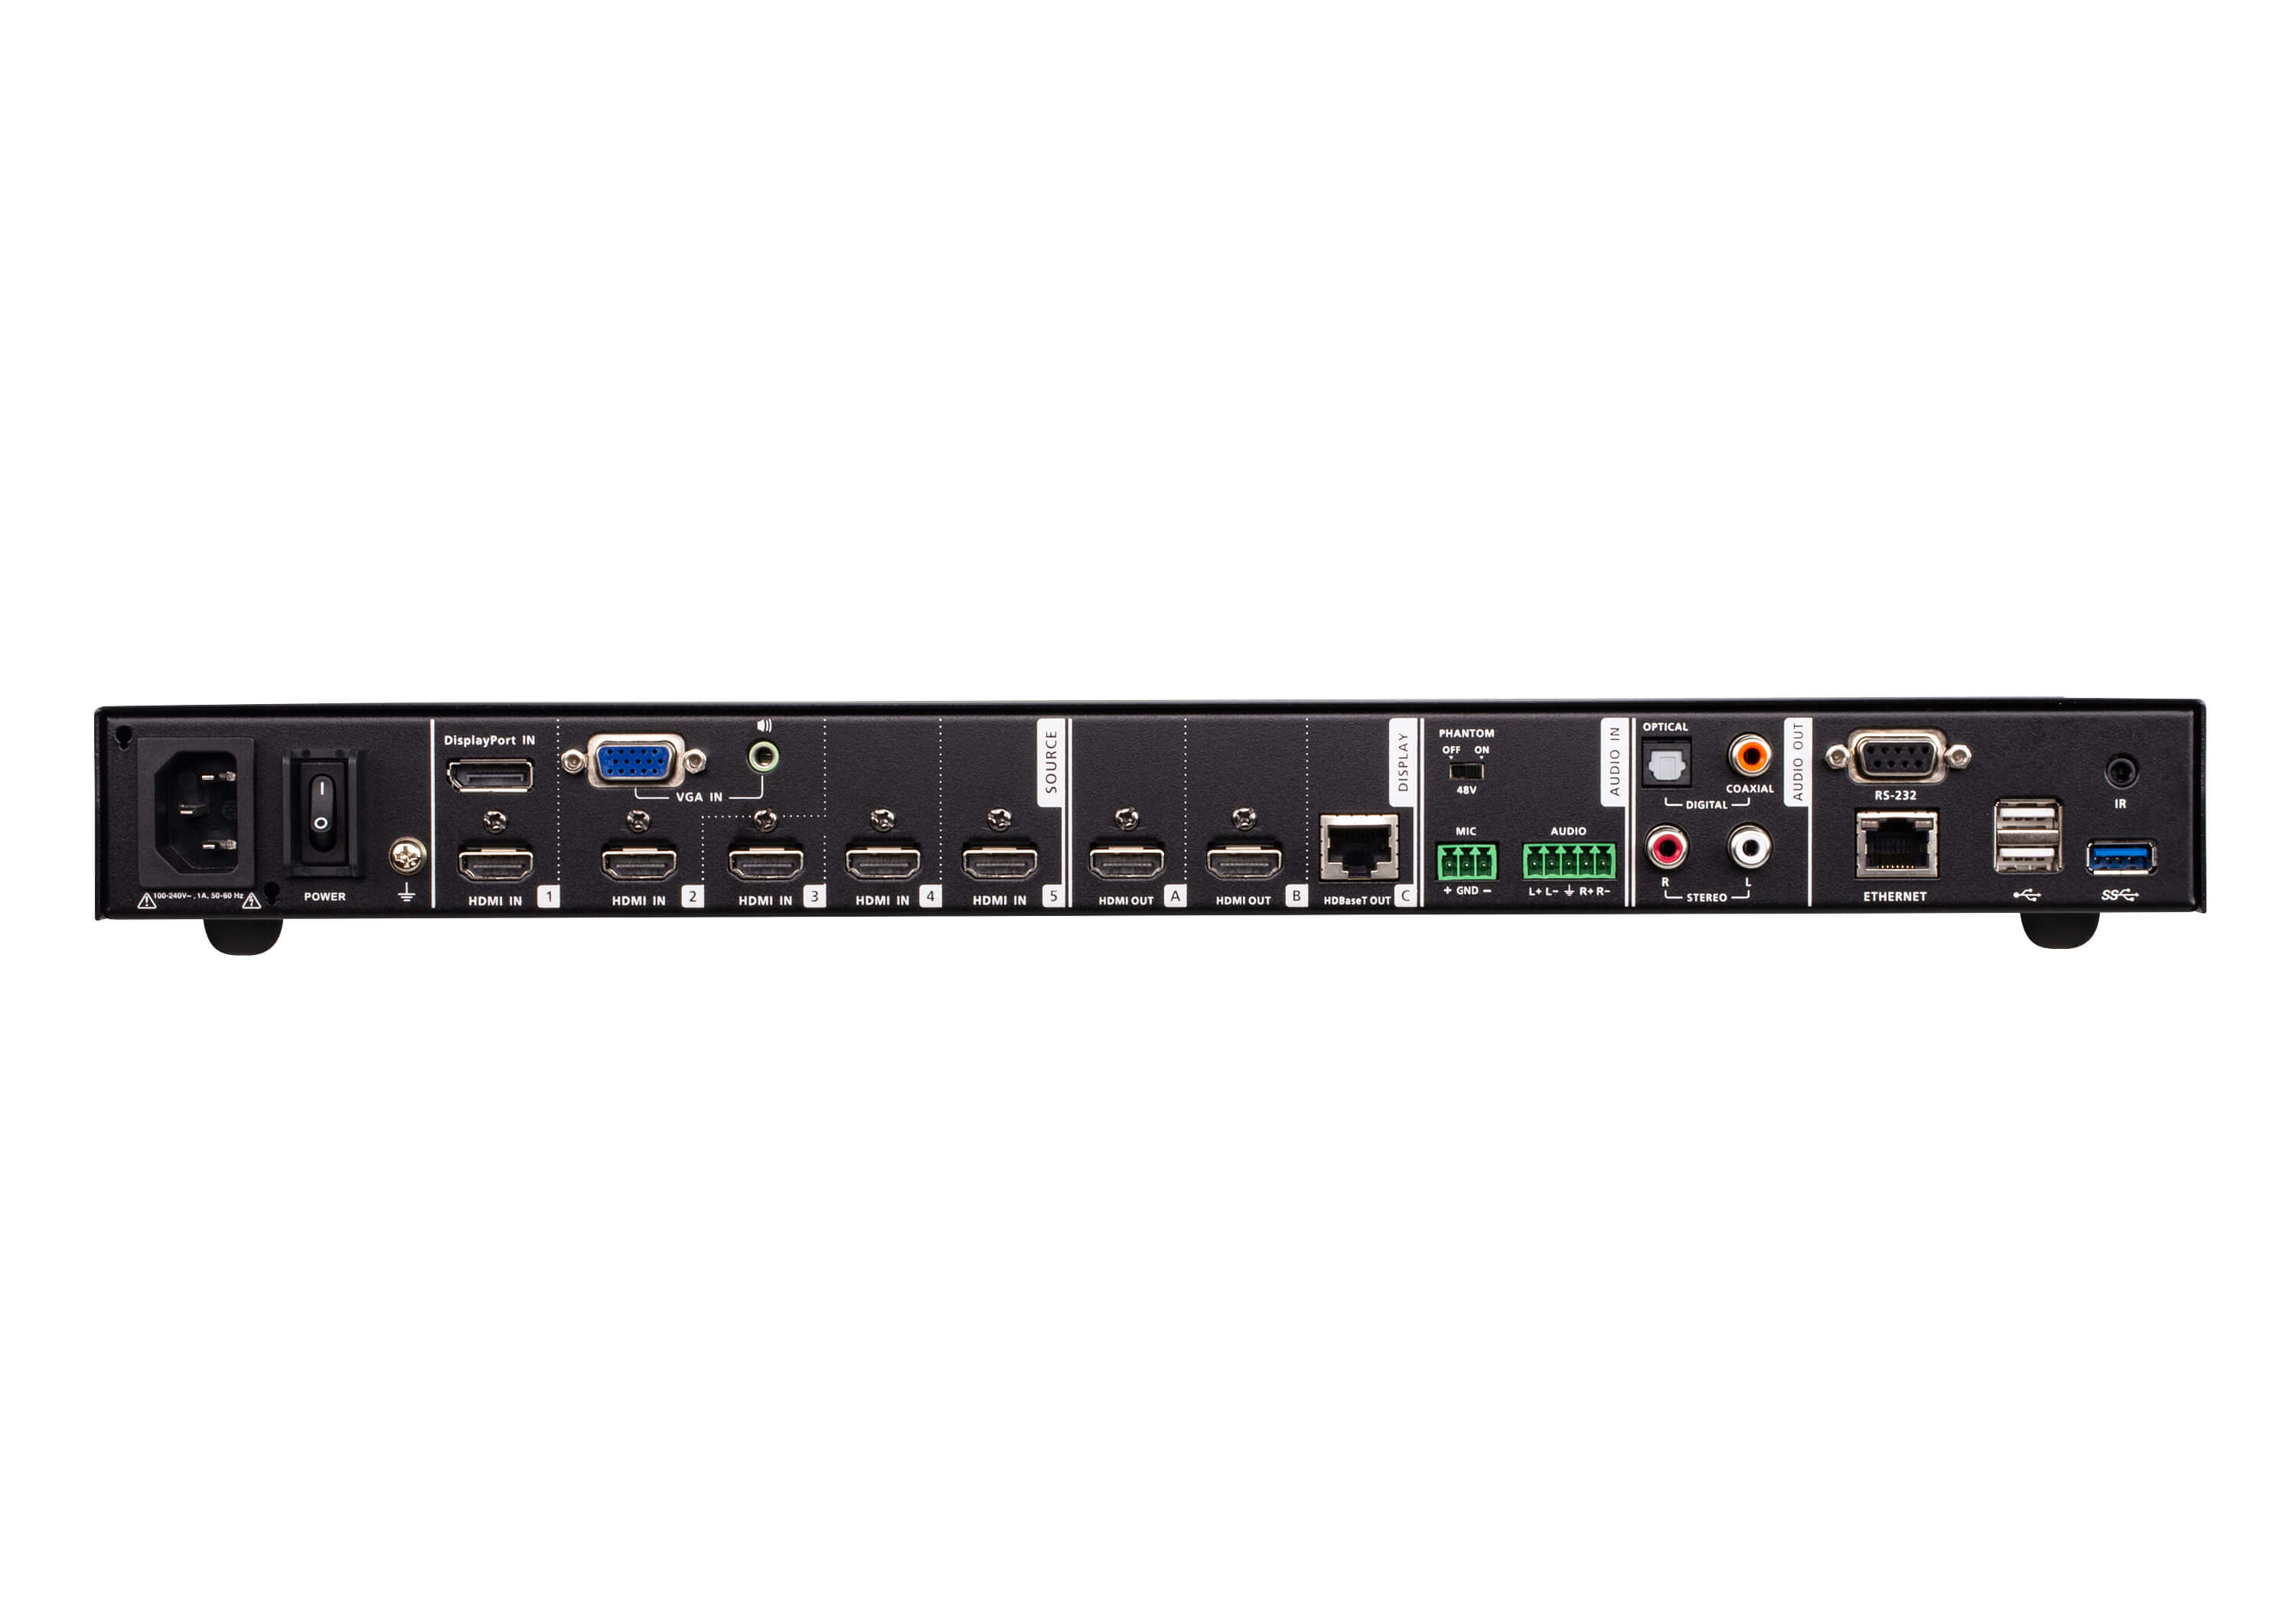 7 x 3 Seamless Presentation Matrix Switch with Scaler, Streaming, Audio Mixer, and HDBaseT-2